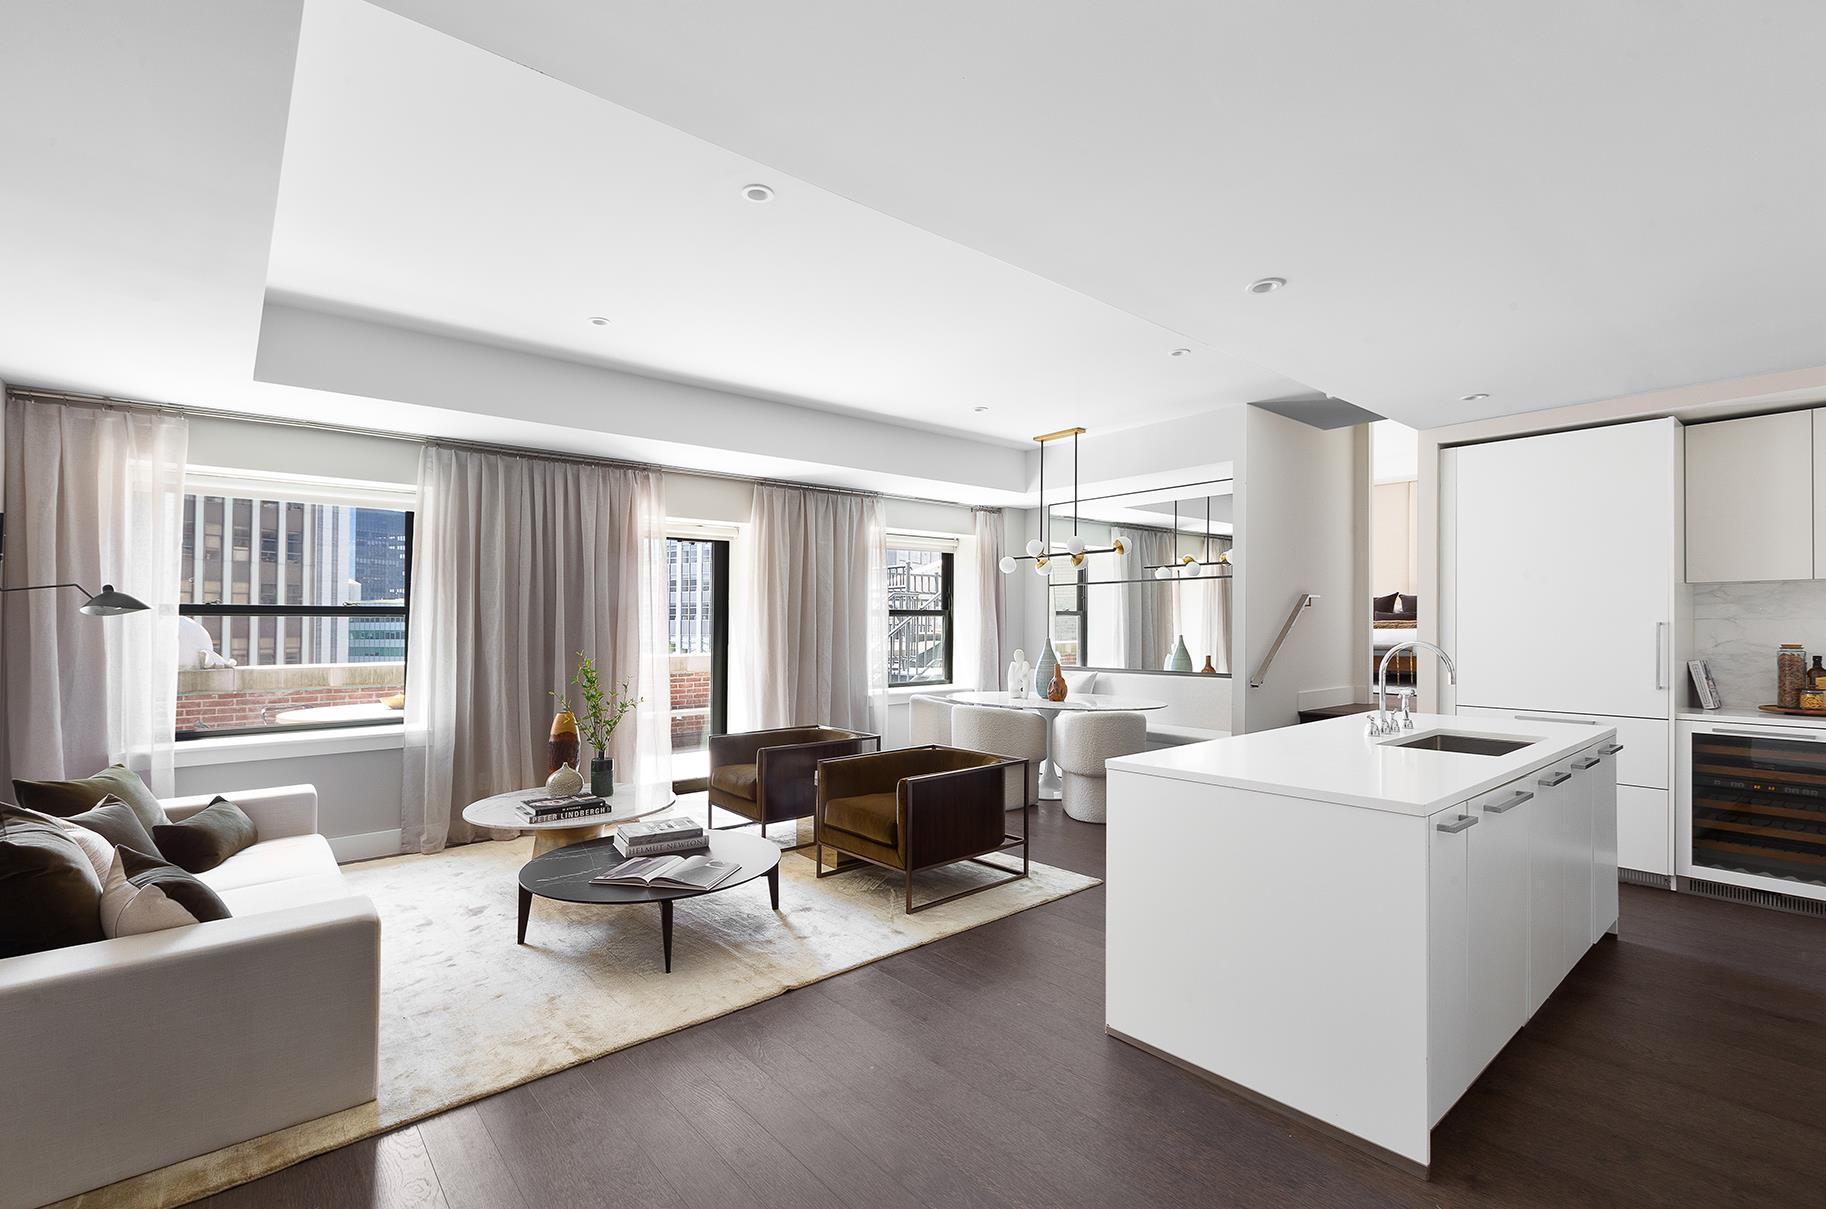 Welcome to the Financial District landmark, The Broad Exchange Building. This light-filled one-bedroom, one-and-a-half-bathroom penthouse is one of four exclusive penthouses at The Broad Exchange Building, measuring 1,132 square feet of interior space, and a private terrace measuring 410 square feet overlooking south of Downtown Manhattan. The outdoor terrace is accessible by two oversized glass doors from the living room and the primary bedroom, providing brilliant southern light exposures throughout.And to top it off, a real New Yorker's treat; a few steps away from major subway lines, including 1/2/3/4/5/A/C/E/J/M/R.The Penthouse Collection at the Broad Exchange Building redefines luxury living at the pinnacle of a beloved Manhattan landmark. Combining state-of-the-art modern finishes with timeless and classical sensibility, these premier homes embody the highest standard of living and are available at price points that offer extraordinary value. With oversized private outdoor terraces, the Penthouse Collection represents some of the most enviable settings in all of Manhattan.Overstated Private TerracesTucked away in the crown of this turn-of-the-century landmark, The Penthouse Collection offers one of the most coveted perks: private outdoor spaces ranging from 410 to 2,839 SF. Unwind in your own secluded sanctuary overlooking the breathtaking skyline and escape the world in the absolute privacy of your home in the sky.The Reawakening of the Most Storied Neighborhood in ManhattanCompleted in 1902, The Broad Exchange was once Manhattan's largest office building. Today, it offers residents an unparalleled opportunity to live in a setting that embraces the intersection of iconic and contemporary - quintessential landmark living in the heart of downtown Manhattan. Start your story where New York began its very own.The Everyday Luxury of Life at The Broad Exchange BuildingThe Broad Exchange Building provides an extraordinary collection of amenity spaces to enhance our